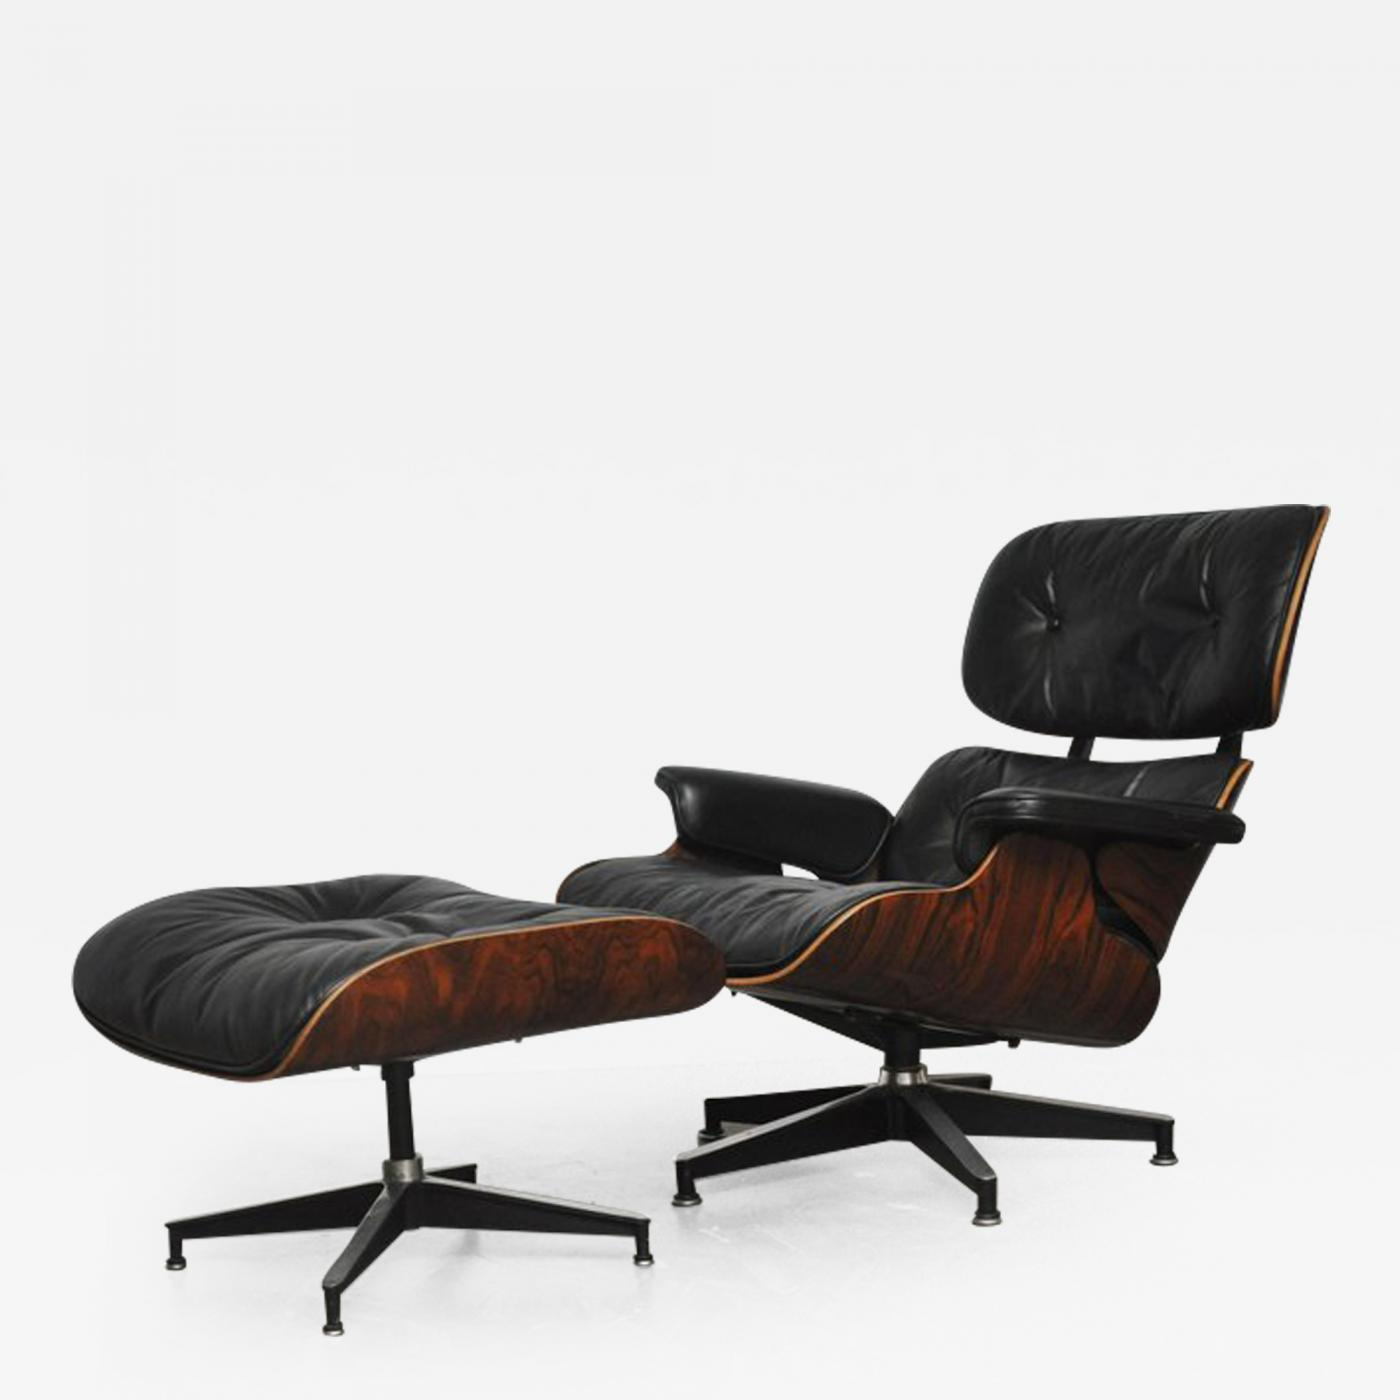 Charles Eames Lounge Chair Charles & Ray Eames - Early Rosewood Charles Eames Lounge Chair For Herman Miller